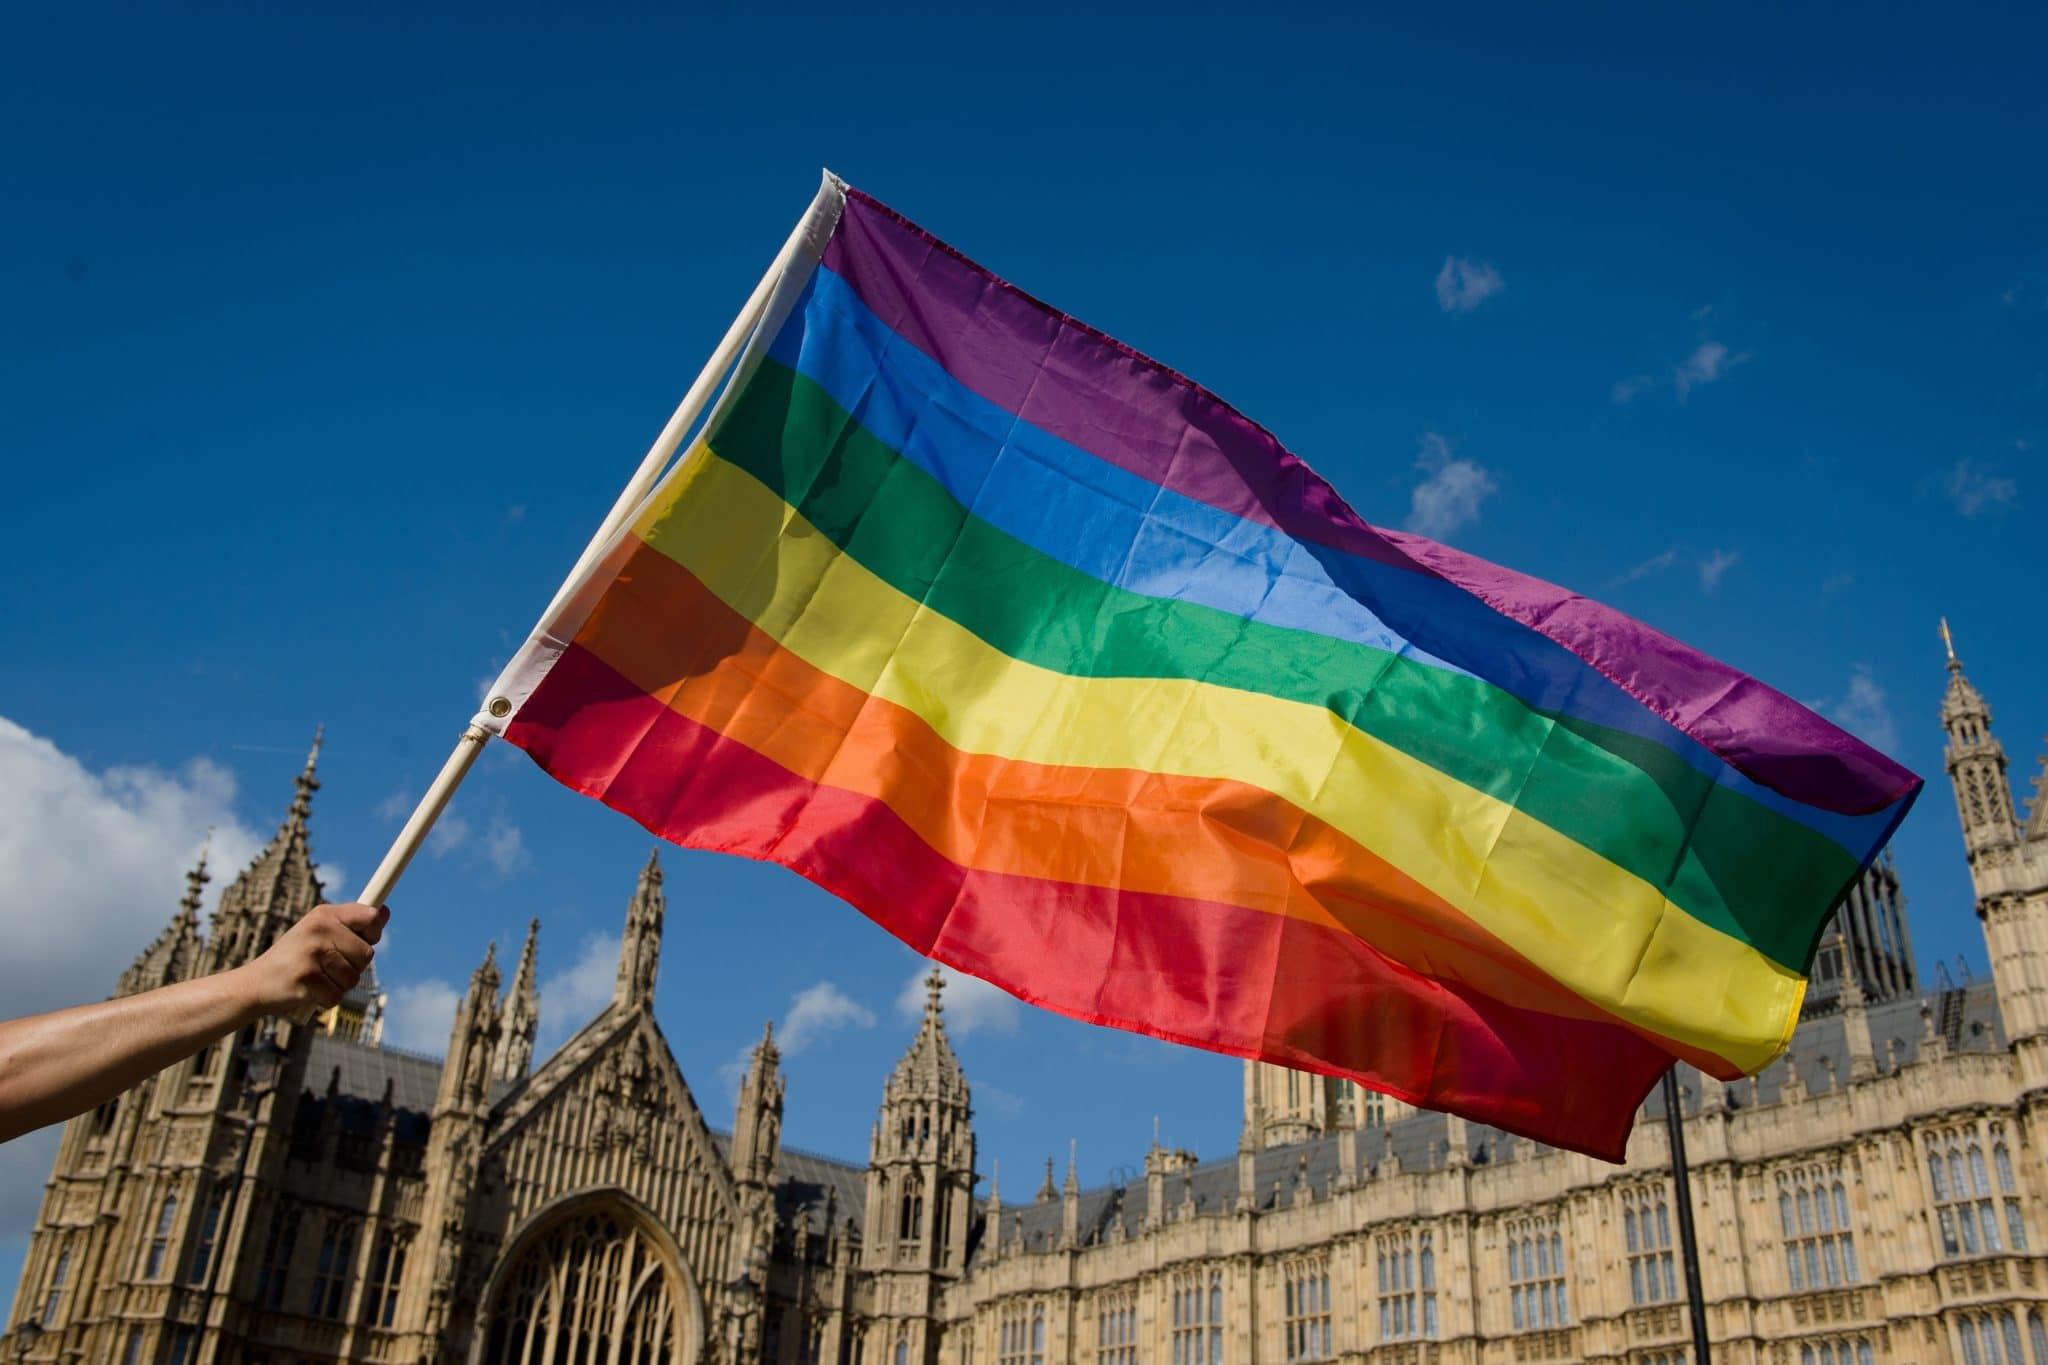 Pried flag held in front of the houses of parliament